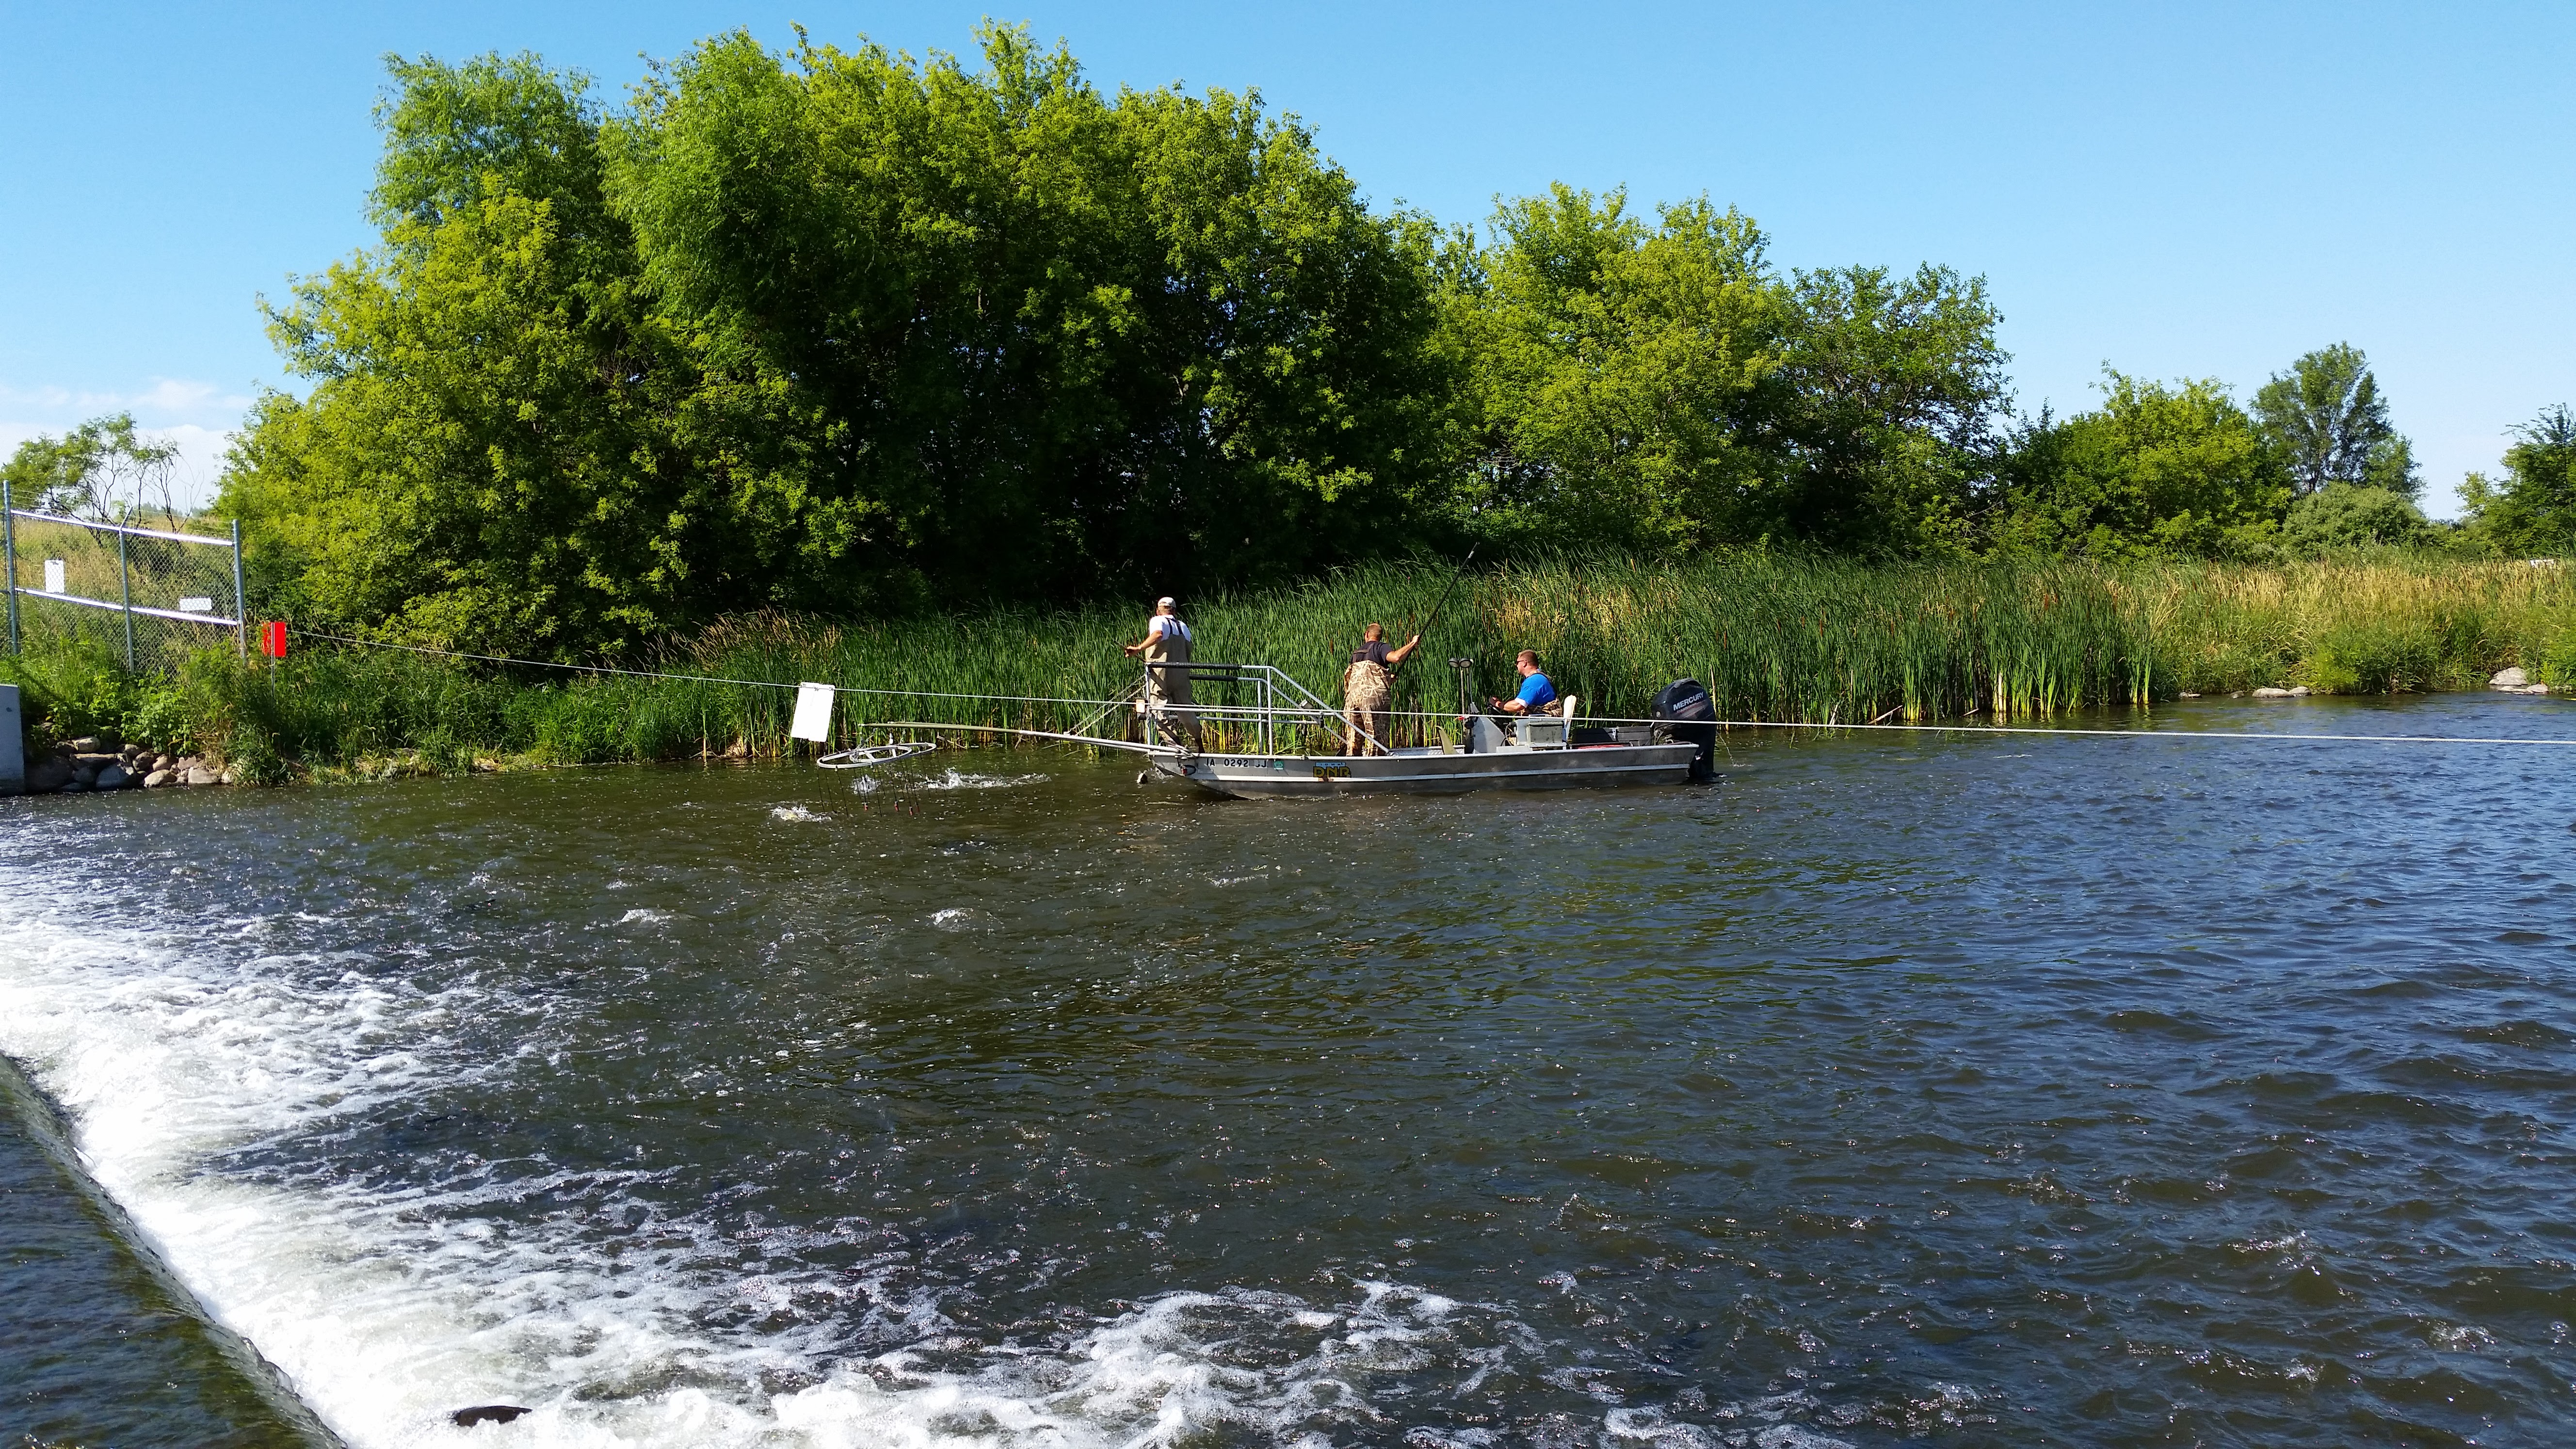 DNR fisheries staff sampling for walleye and muskellunge in the Iowa Great Lakes.